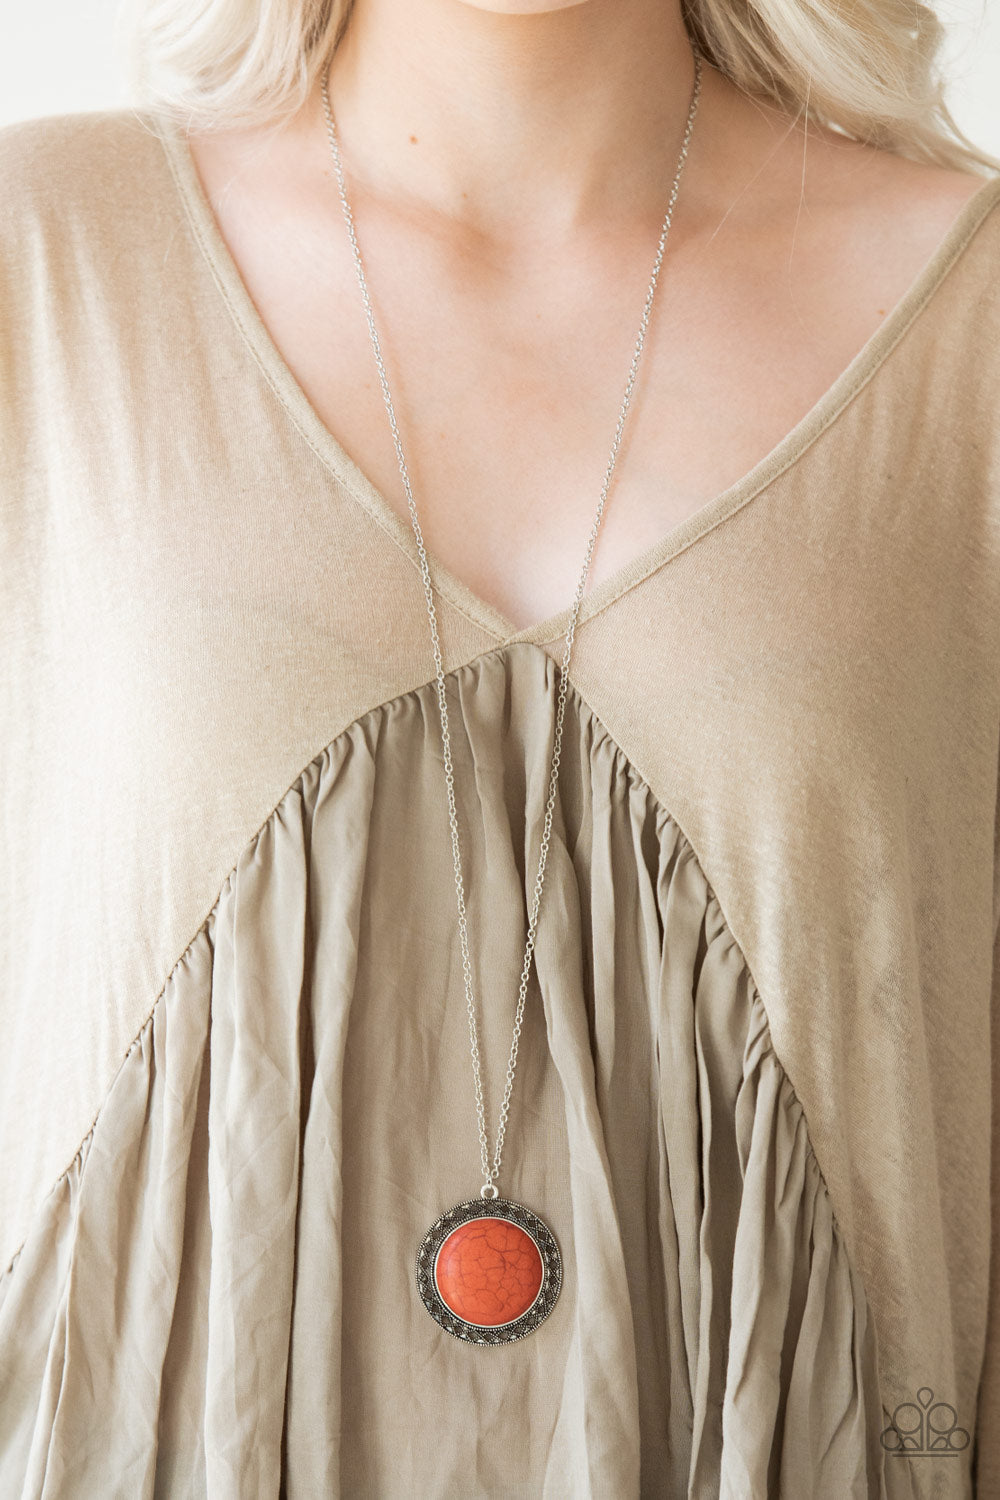 Run Out of Rodeo - orange - Paparazzi necklace